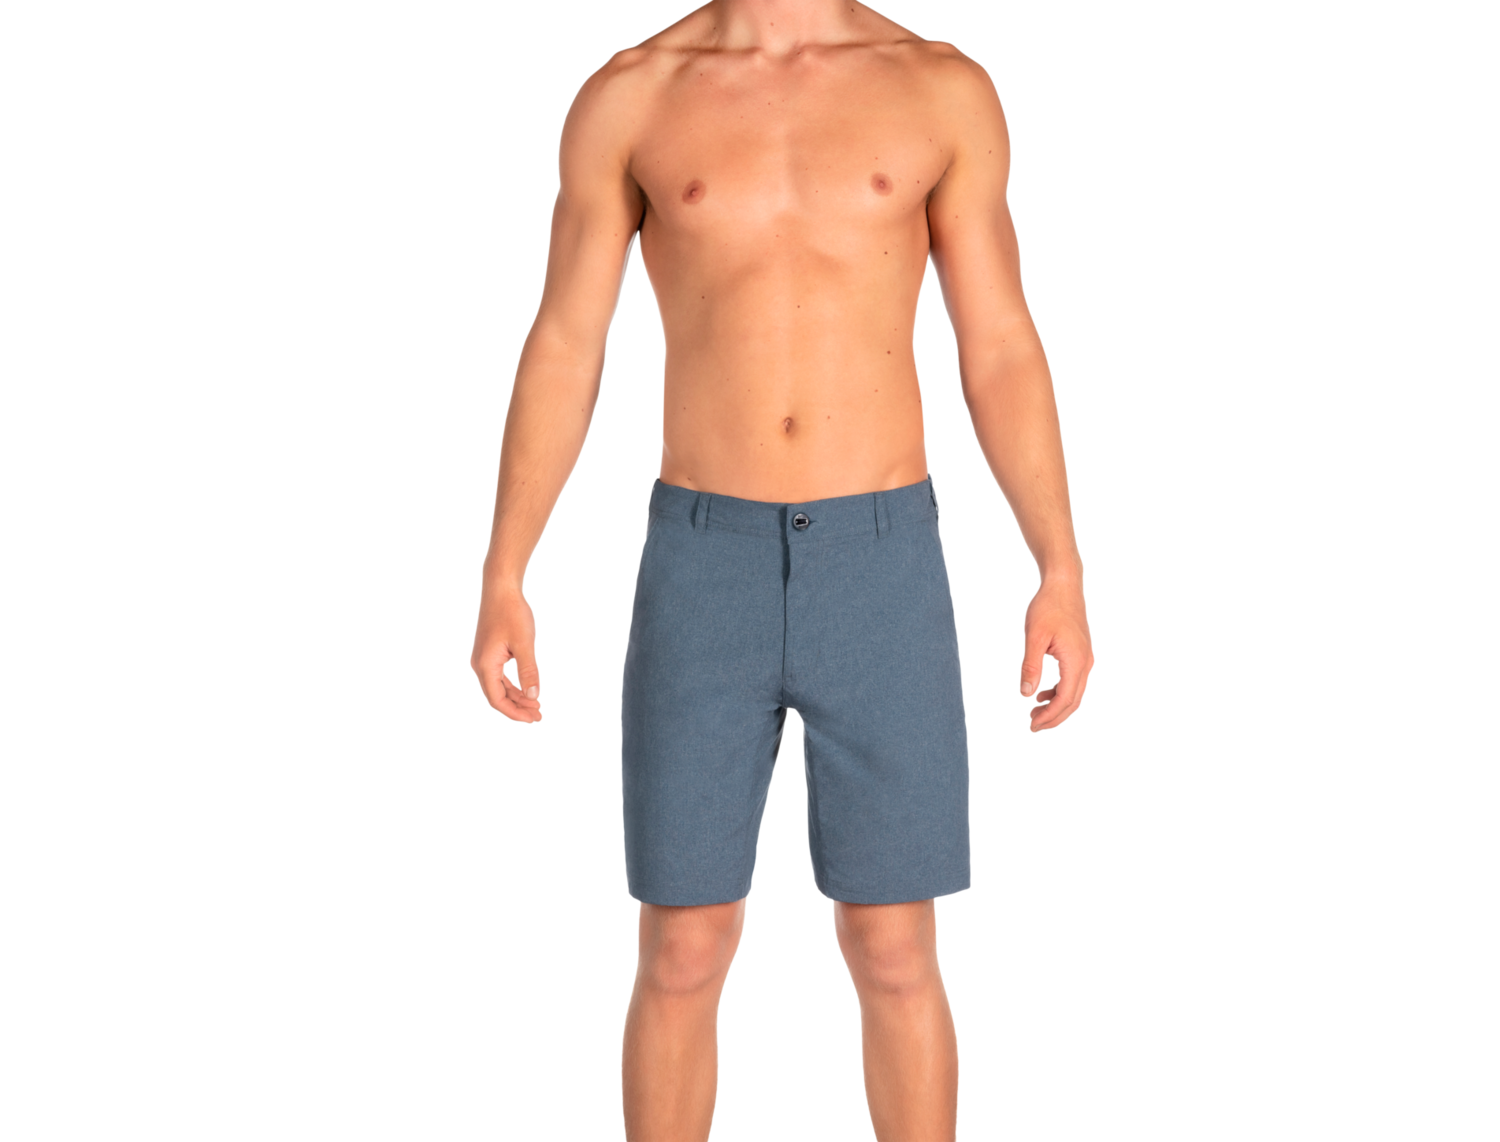 SXTX27 NHT New Frontier 2 in 1 Shorts 38